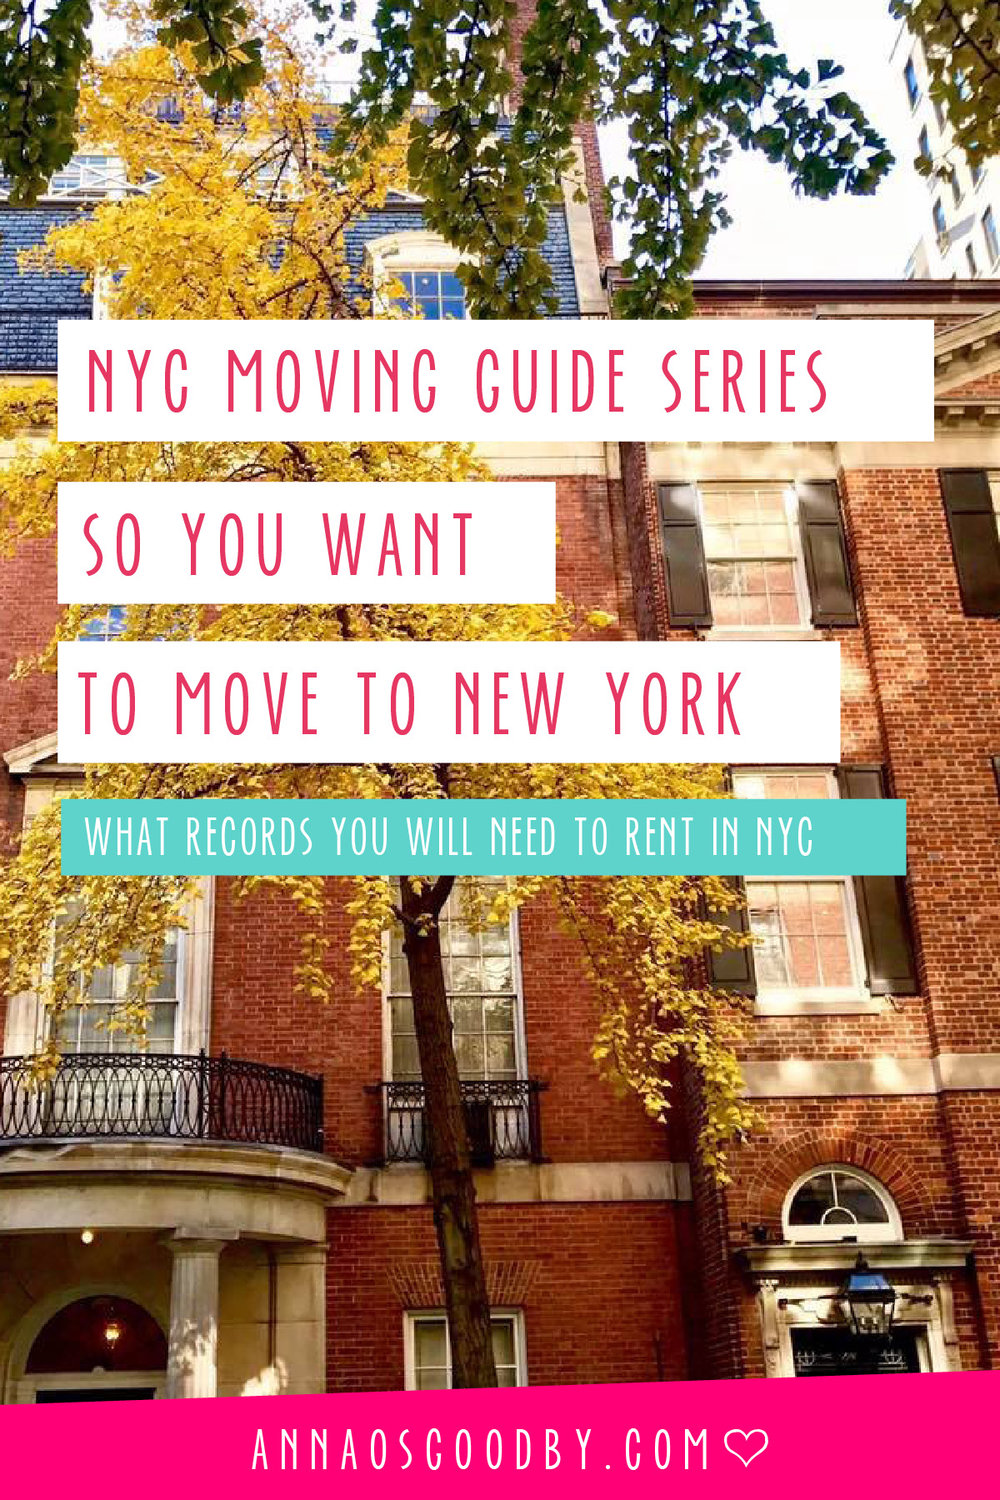 Anna Osgoodby Life + Design :: So You Want to Move to NYC :: What records and files you will need to rent in NYC